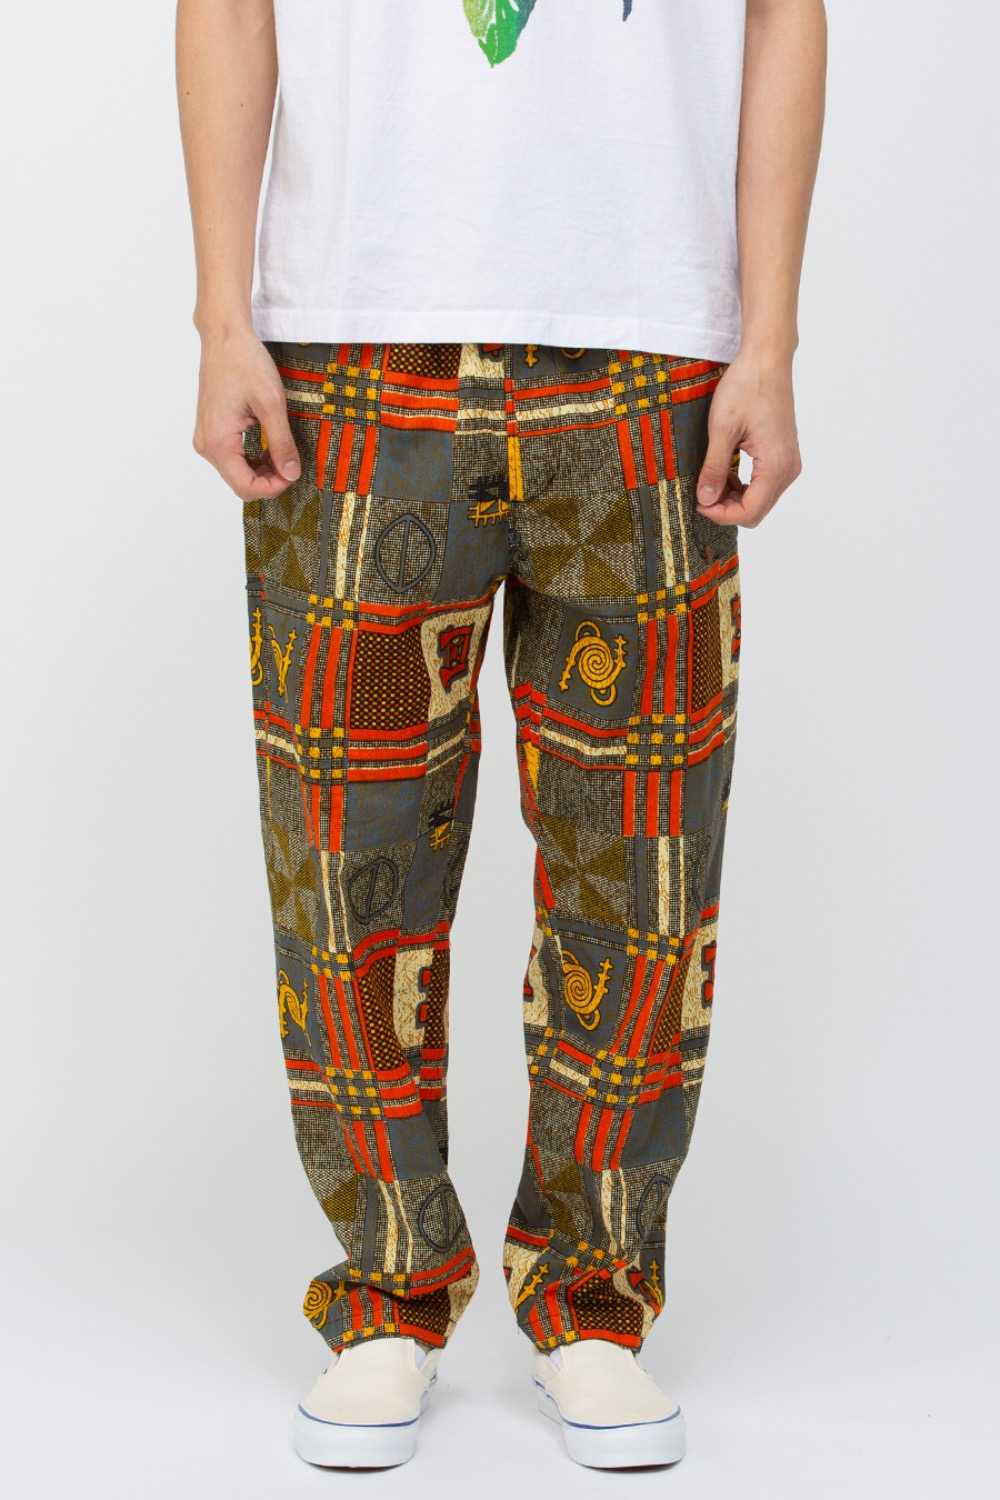 DRAWSTRING PANT BLACK GOLD COTTON AFRICAN PRINT